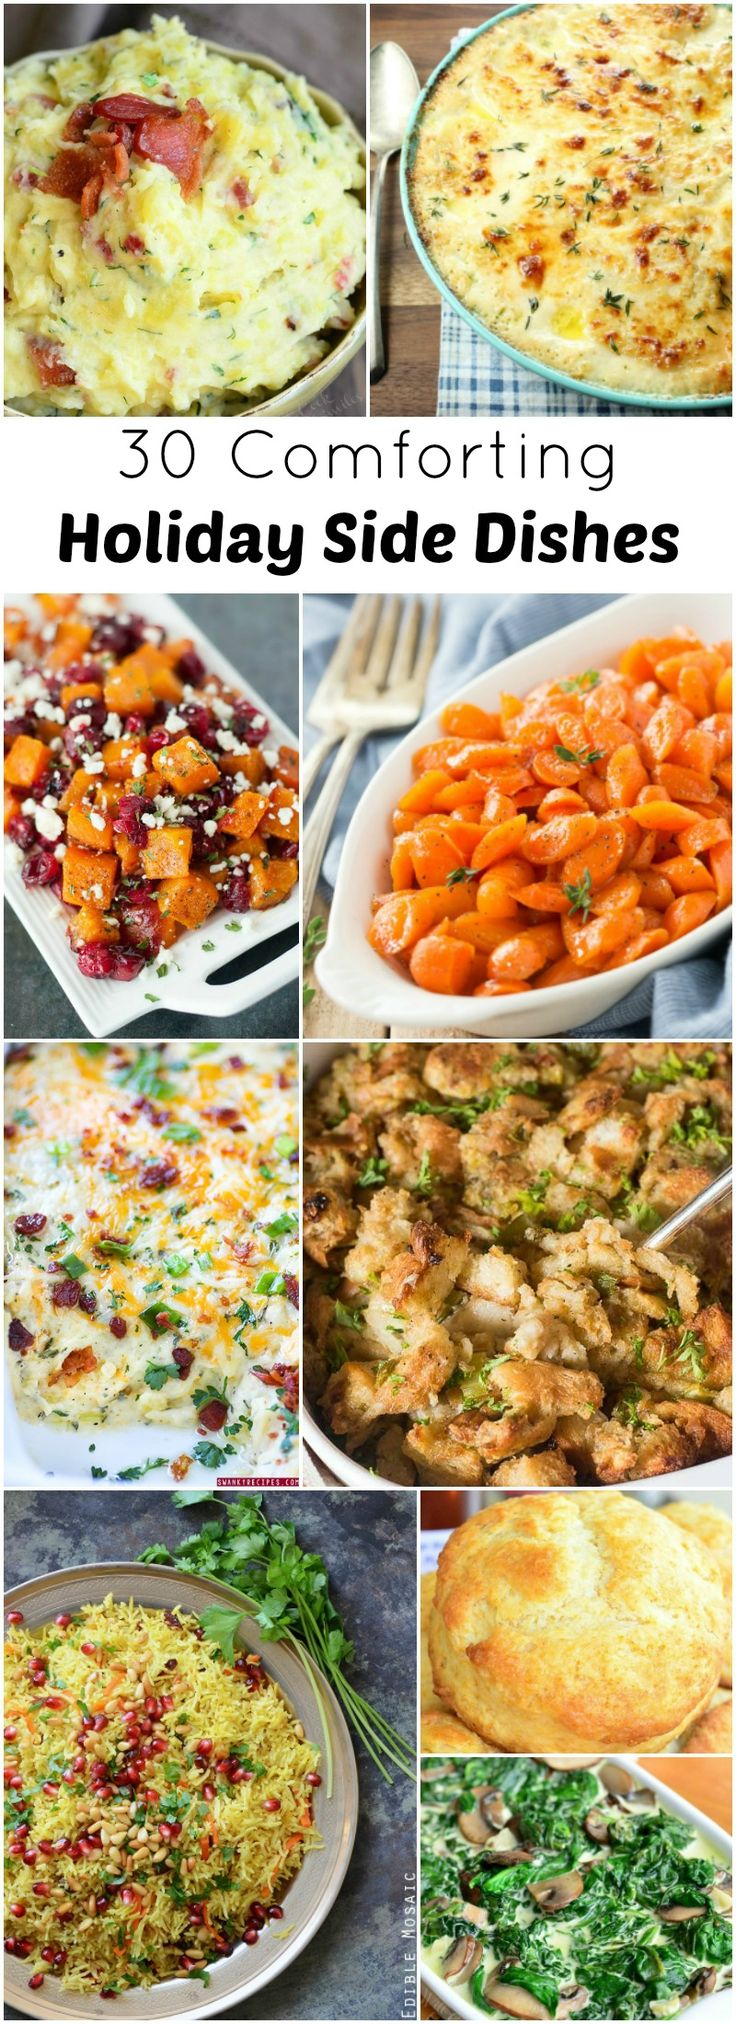 Good Vegetable Ideas For Dinner Party Part - 13: 30-comforting-holiday-side-dishes